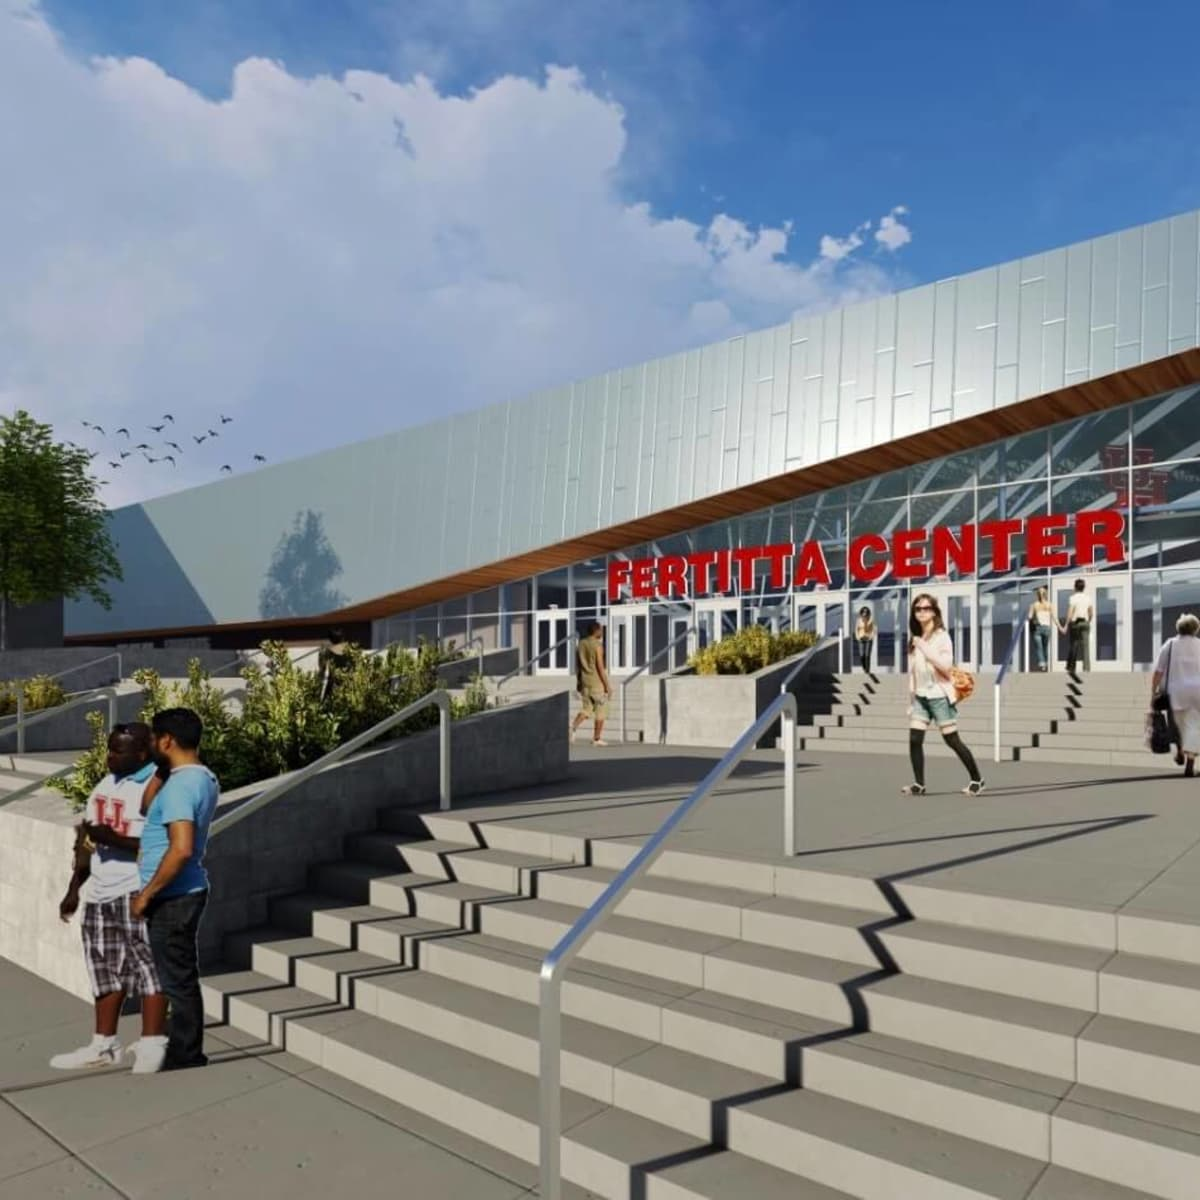 Fertitta Center exterior rendering